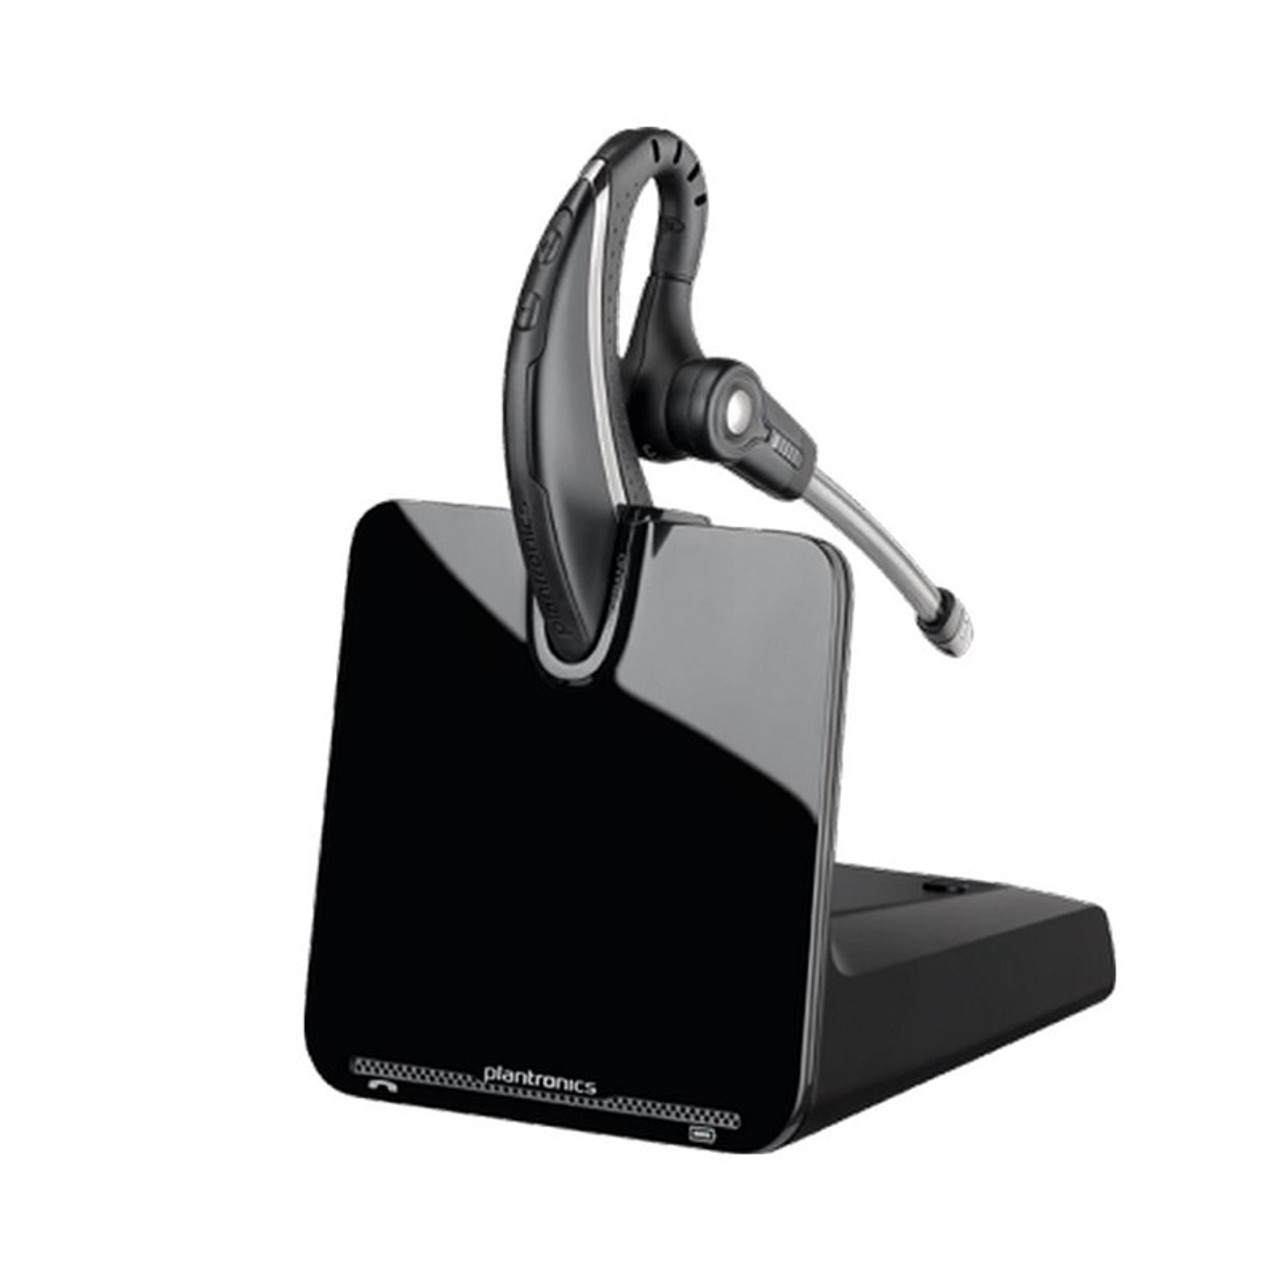 Image for Plantronics CS530 Over Ear Wireless Deskphone DECT System CX Computer Superstore